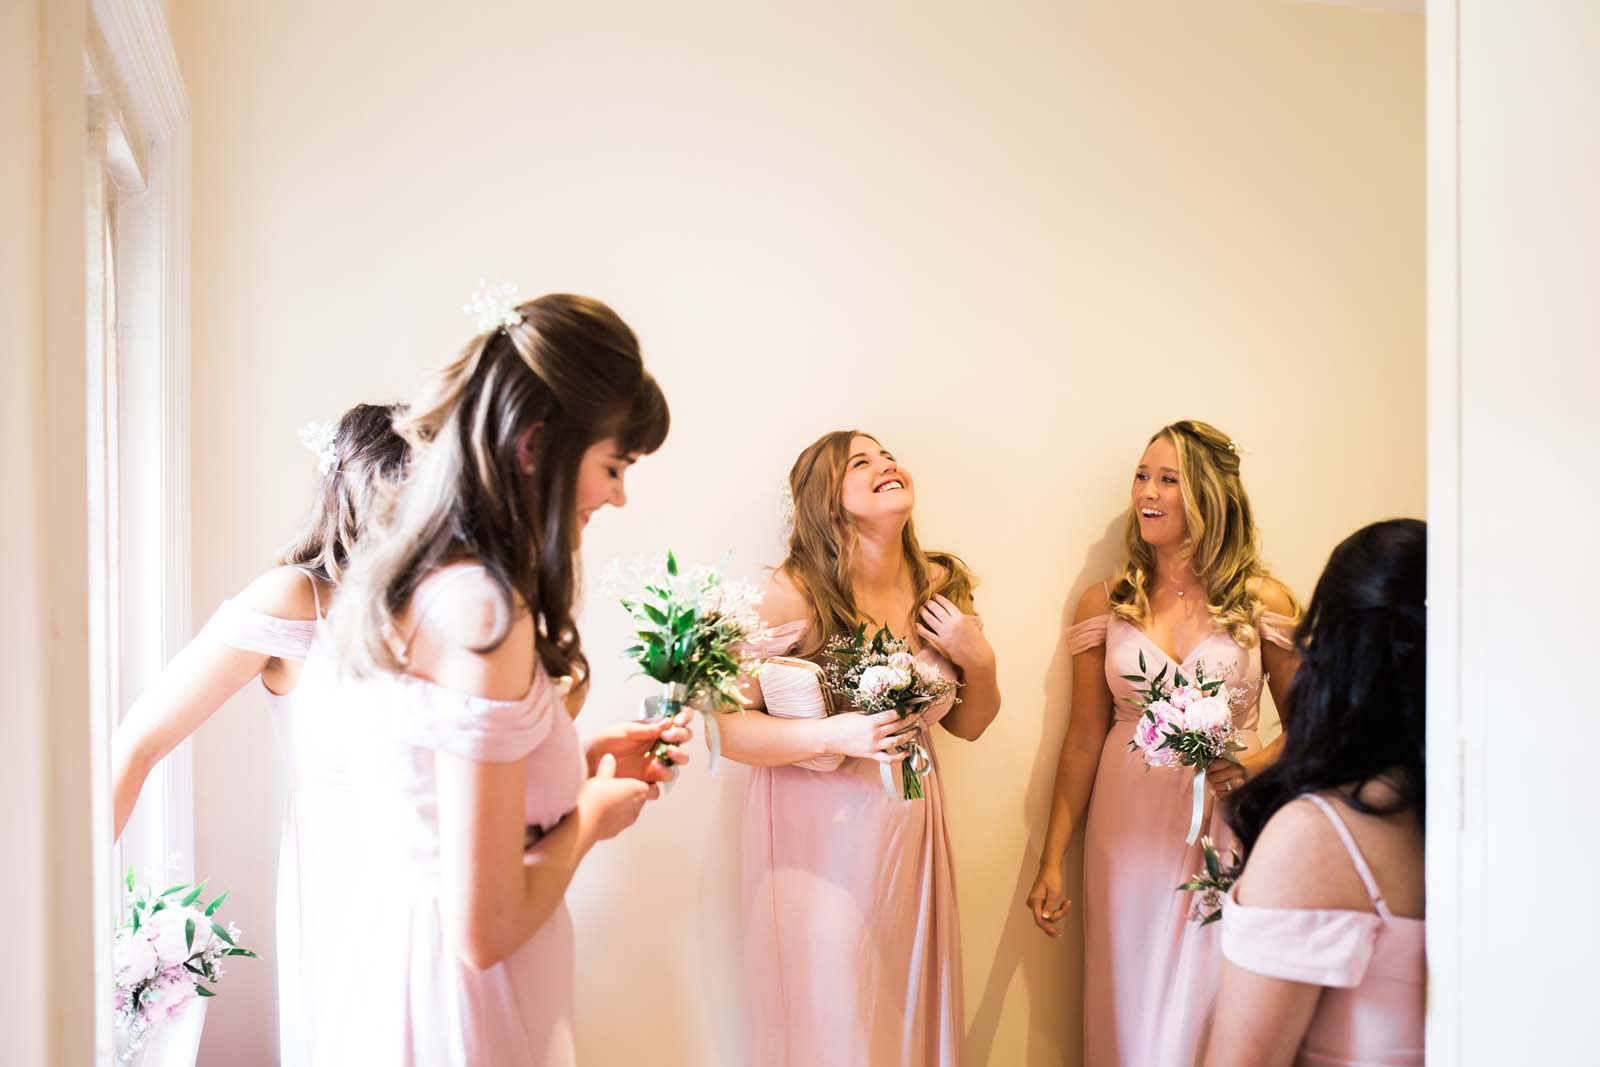 Notley Abbey wedding in Buckinghamshire bridesmaids laughing